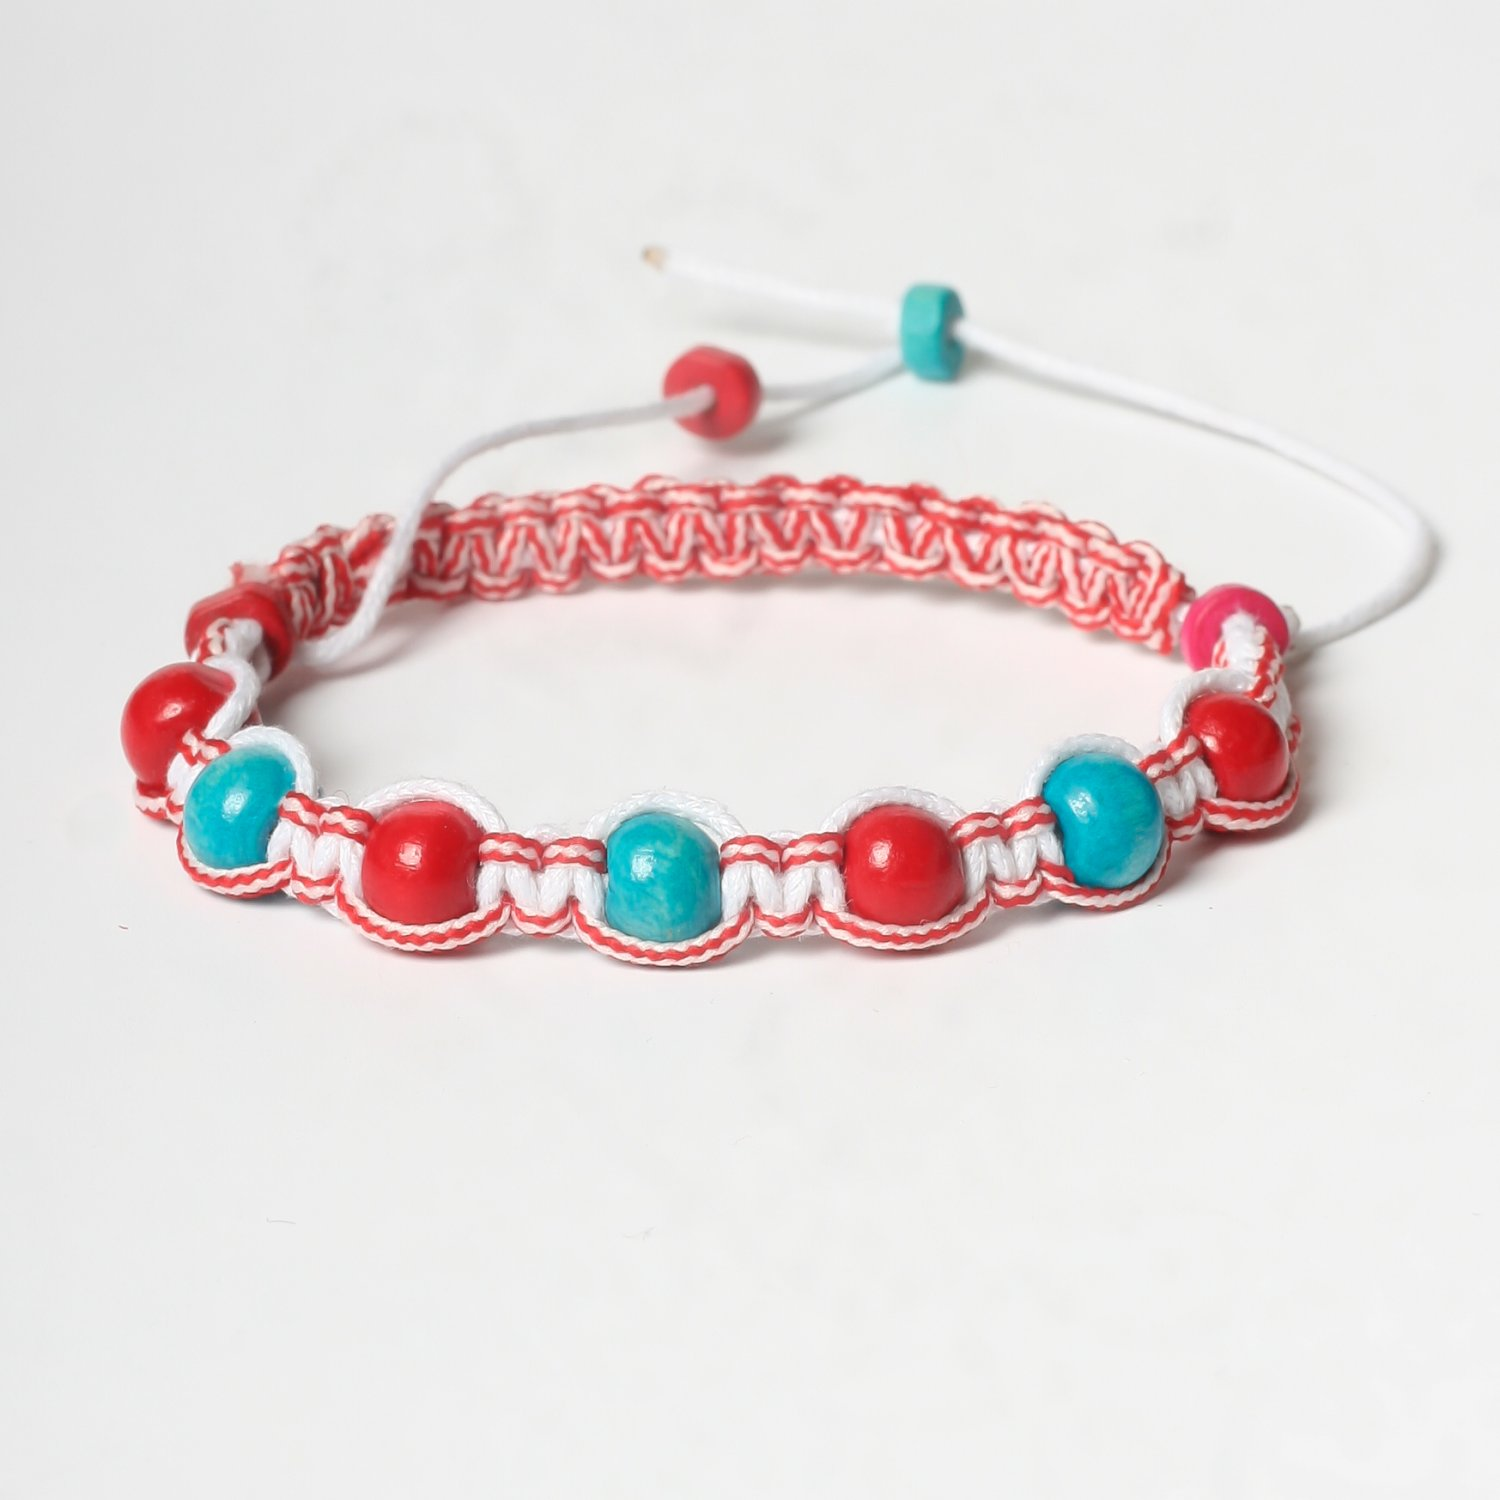 Fashion bracelet. Gift for her.